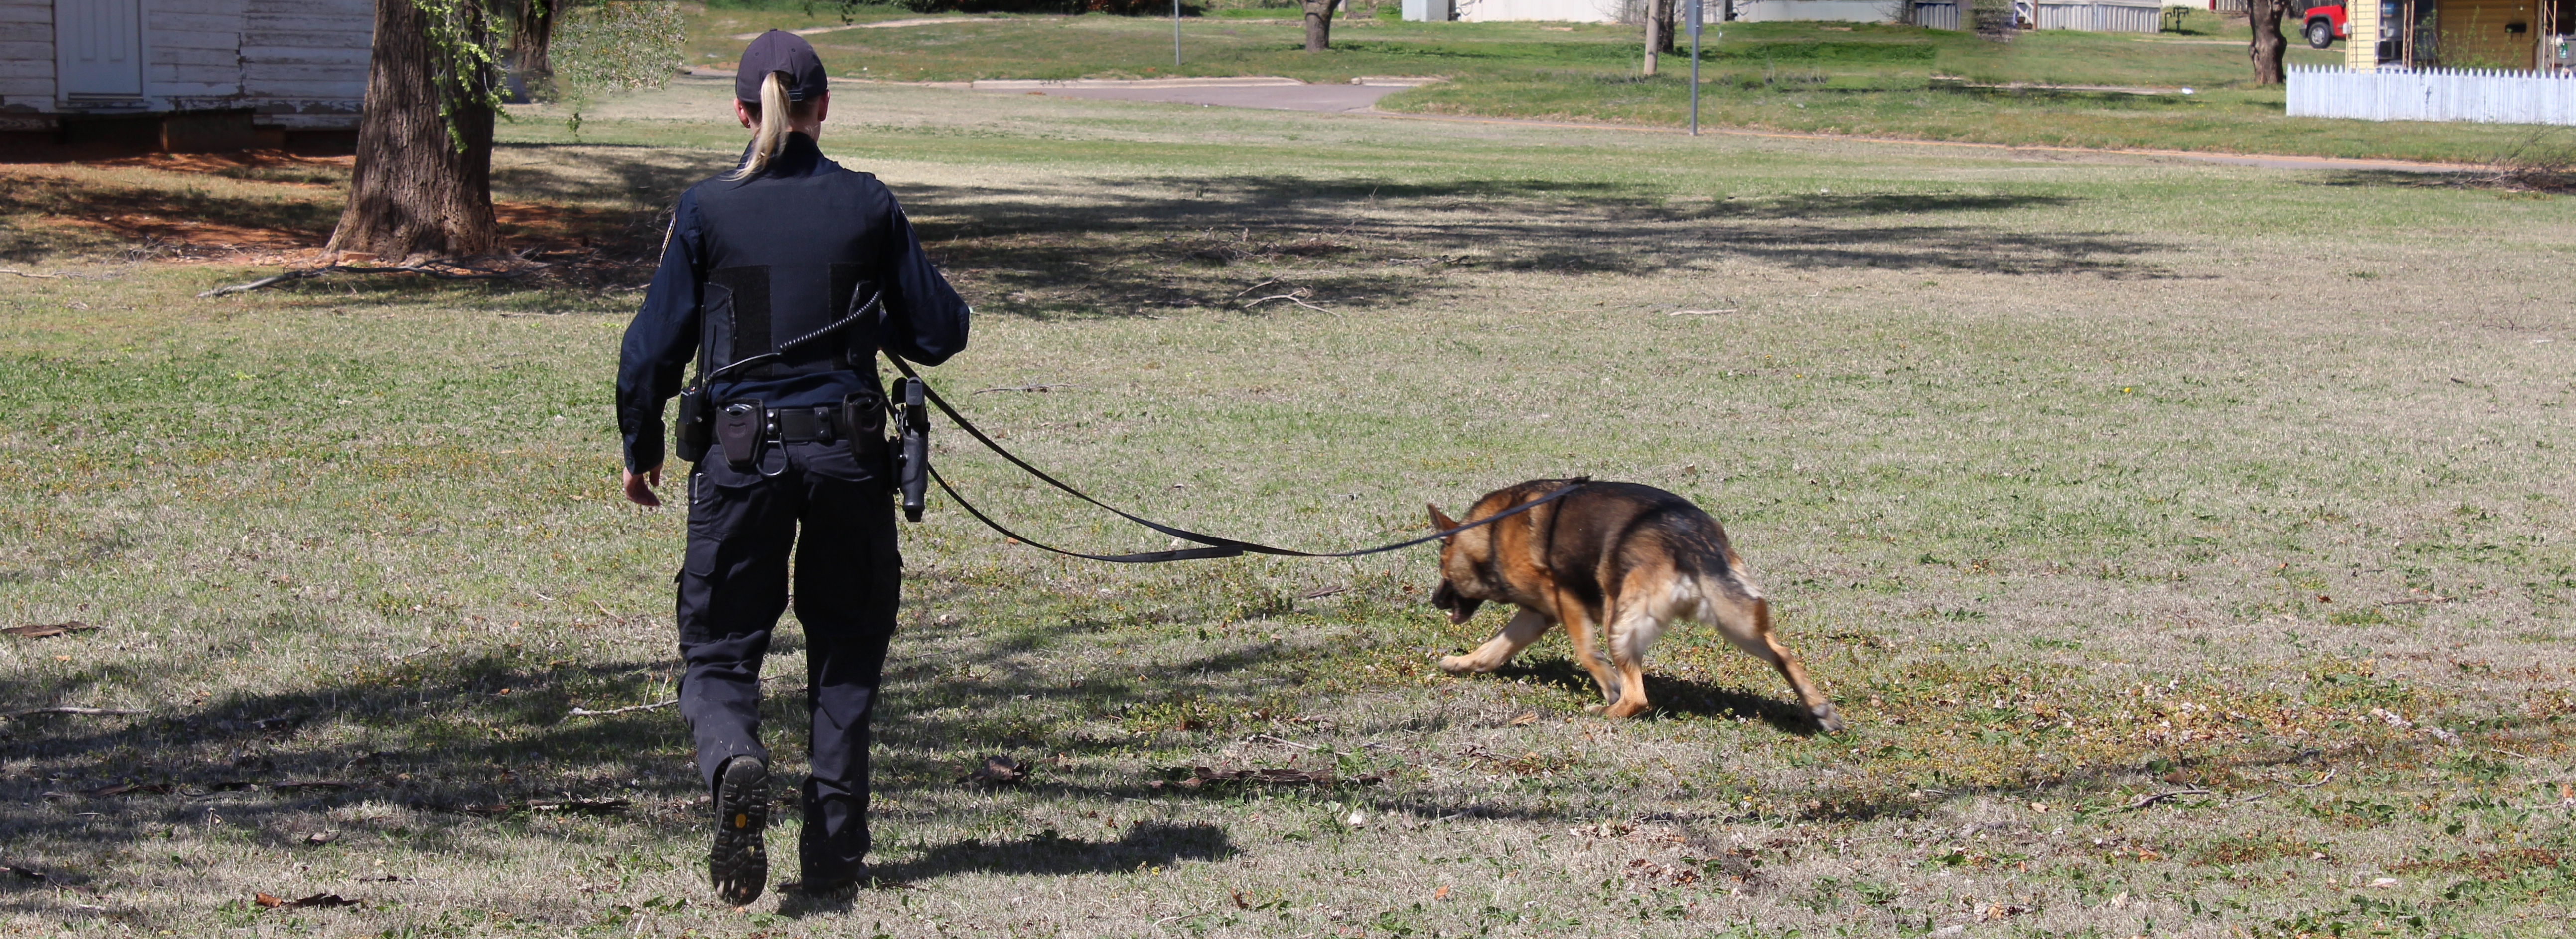 police officer training one of the drug dogs